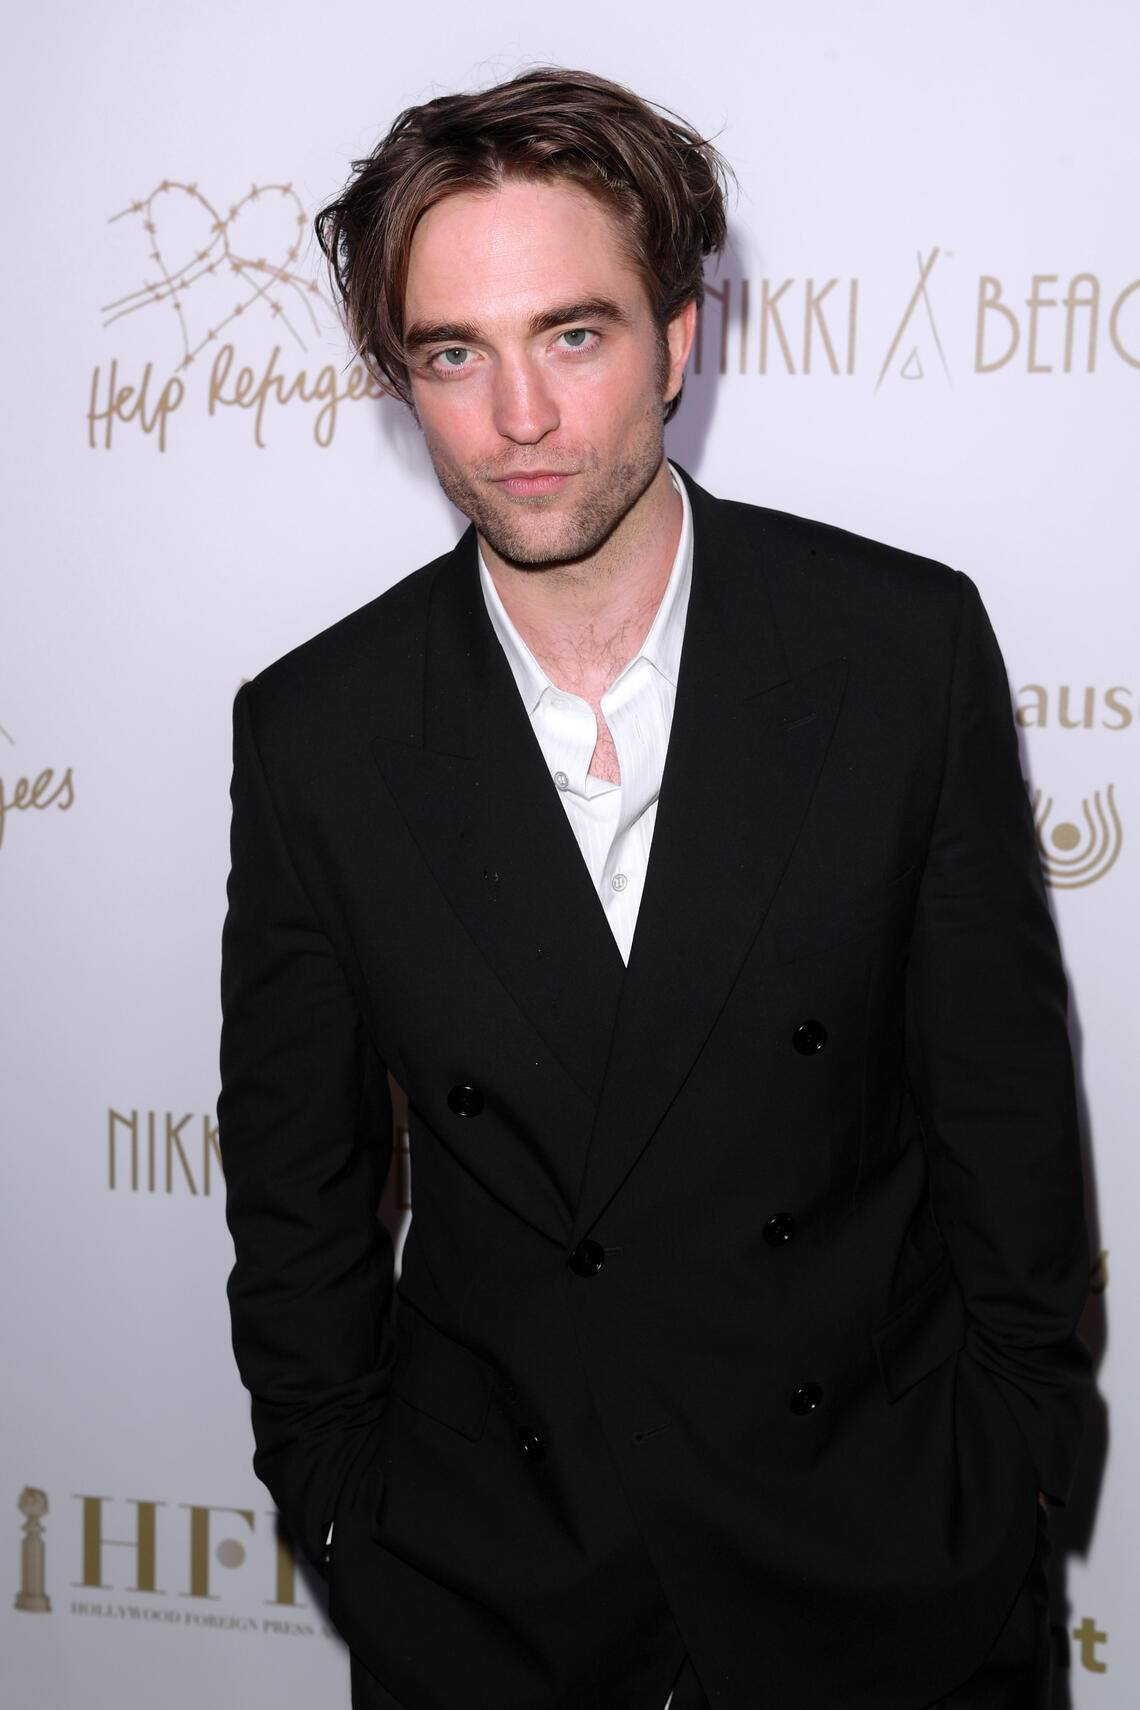 Mandatory Credit: Photo by David Fisher/REX (10241048s)Robert PattinsonHFPA Philanthropic party, 72nd Cannes Film Festival, France - 19 May 2019Event held at Original Luxury Beach Club's Cannes Outpost for a third year and coincides with Nikki Beach's 20 Year Celebration.